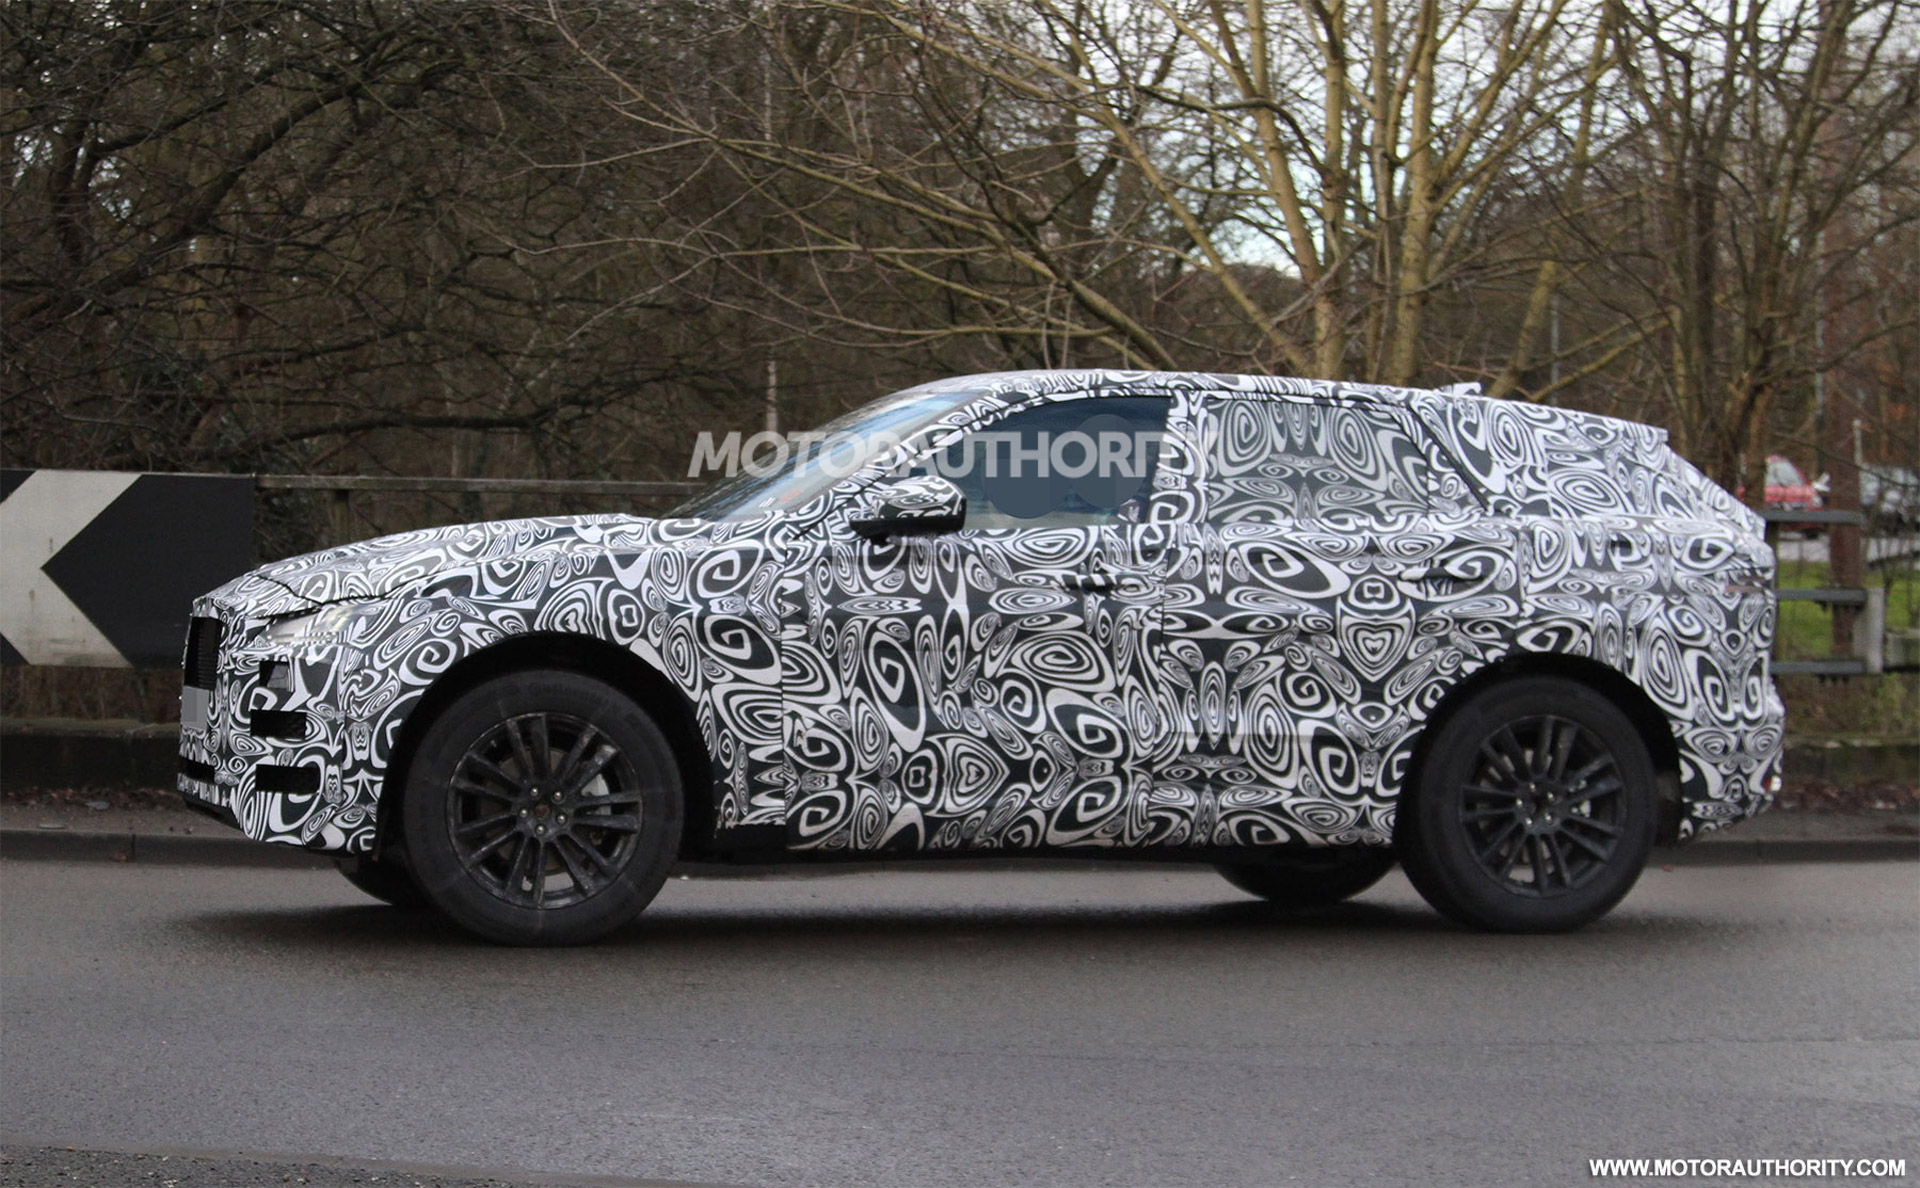 Jaguar F Pace Spied Lamborghini Aventador Sv Leaked Furious 7 Teased Today S Car News